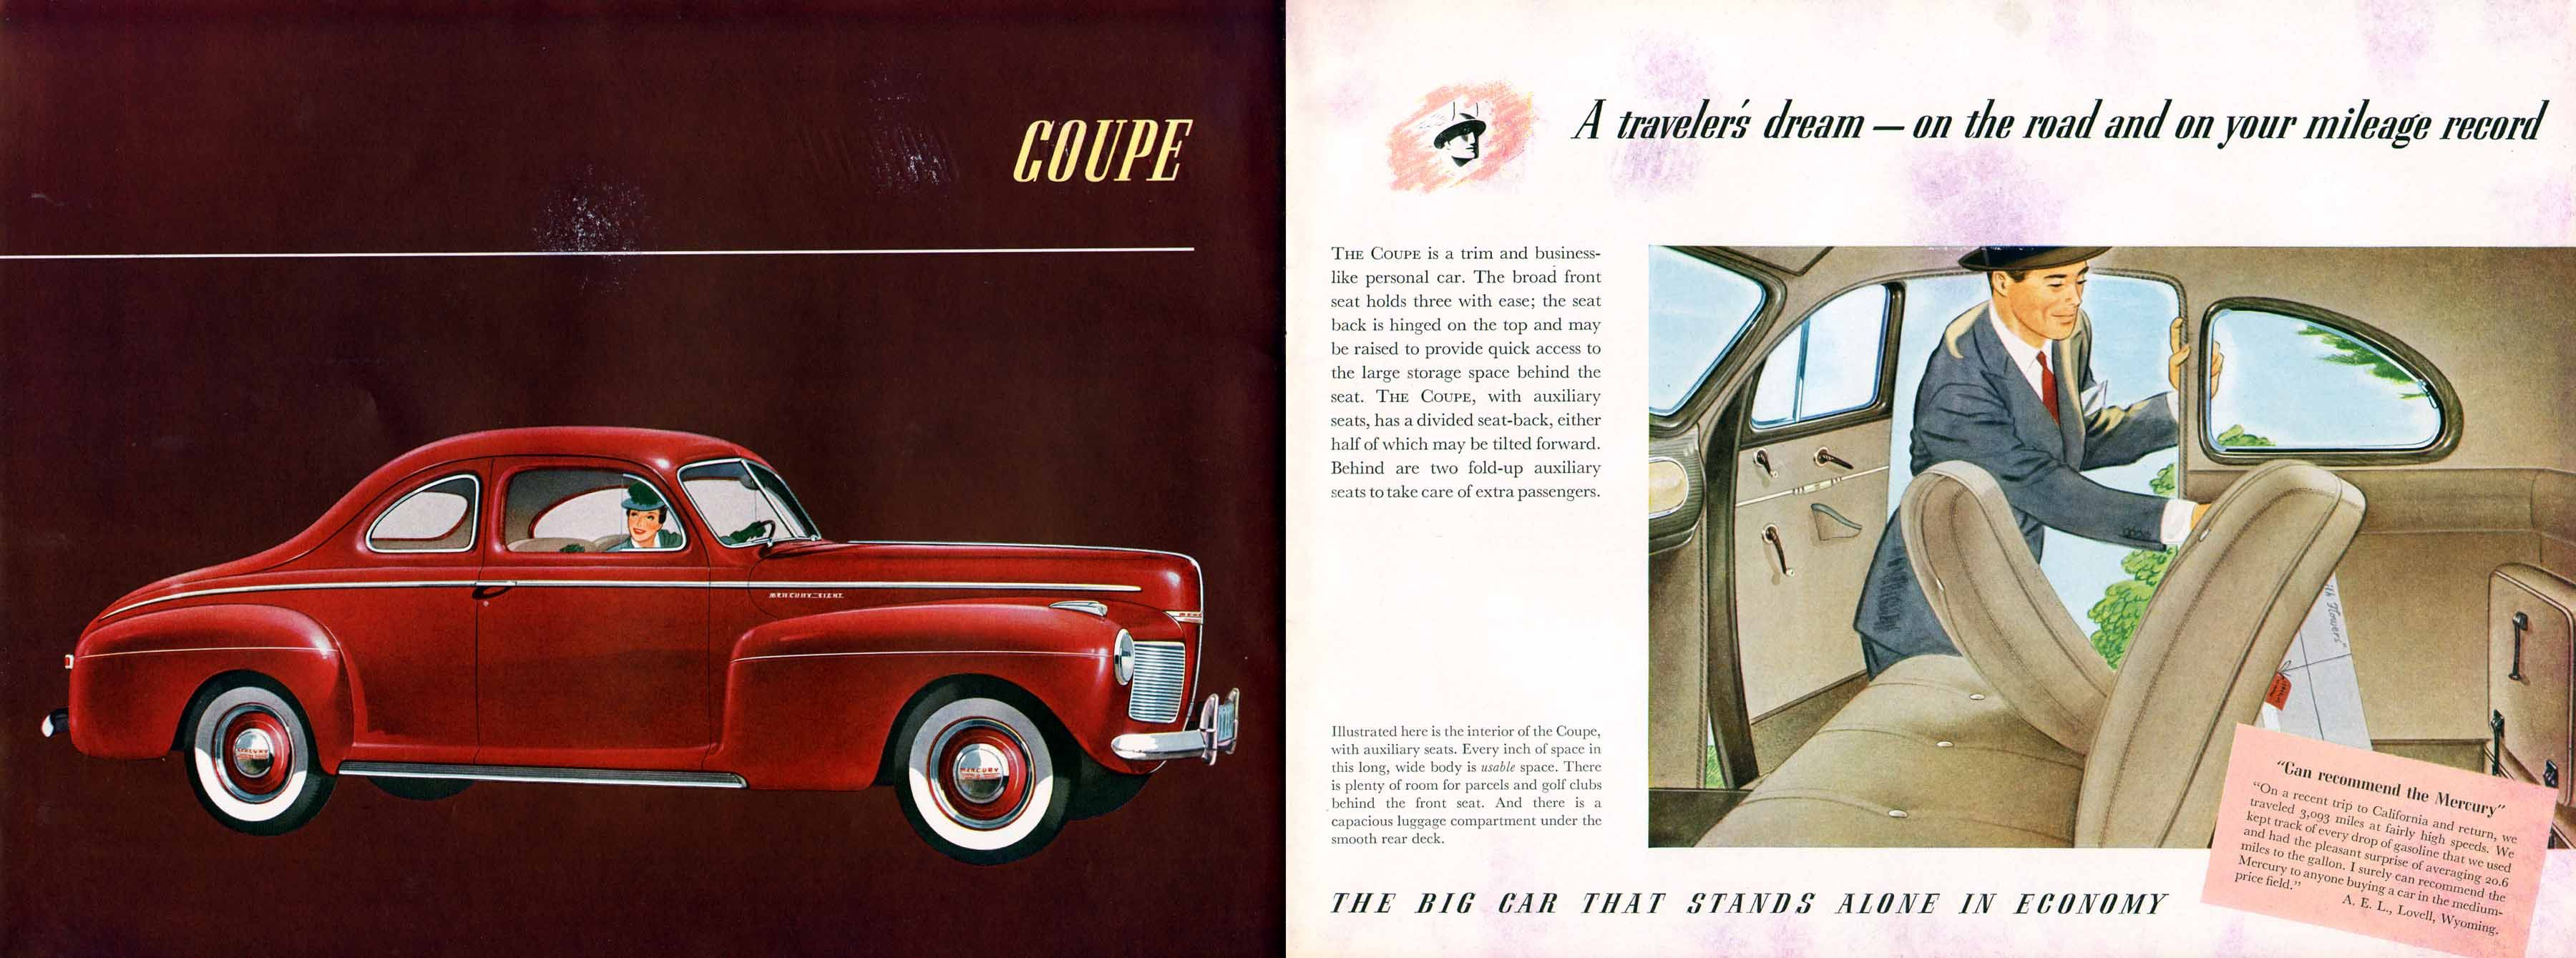 1941 Mercury Coupe Products I Love Pinterest 4 Door Sedan Cars Car Brochure Illustration Ford Motor Company